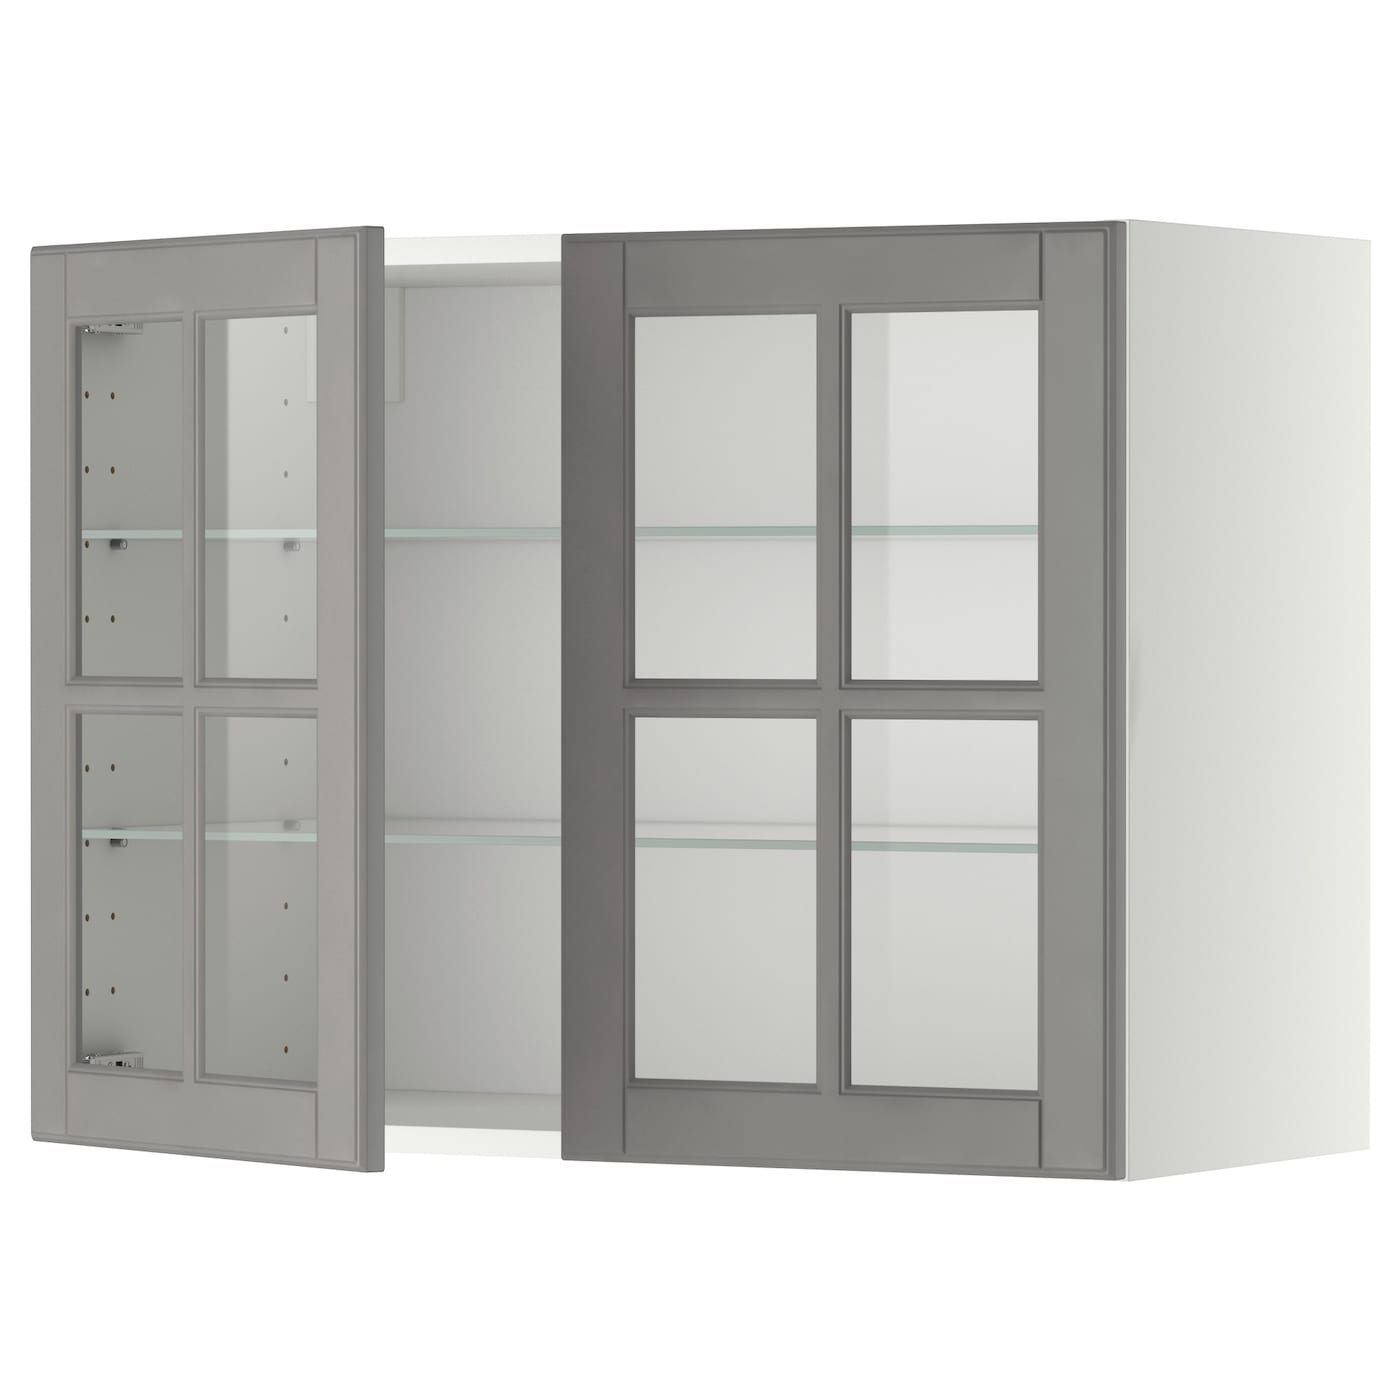 glass shelves for kitchen cabinets metod wall cabinet w shelves 2 glass drs white bodbyn grey 6850